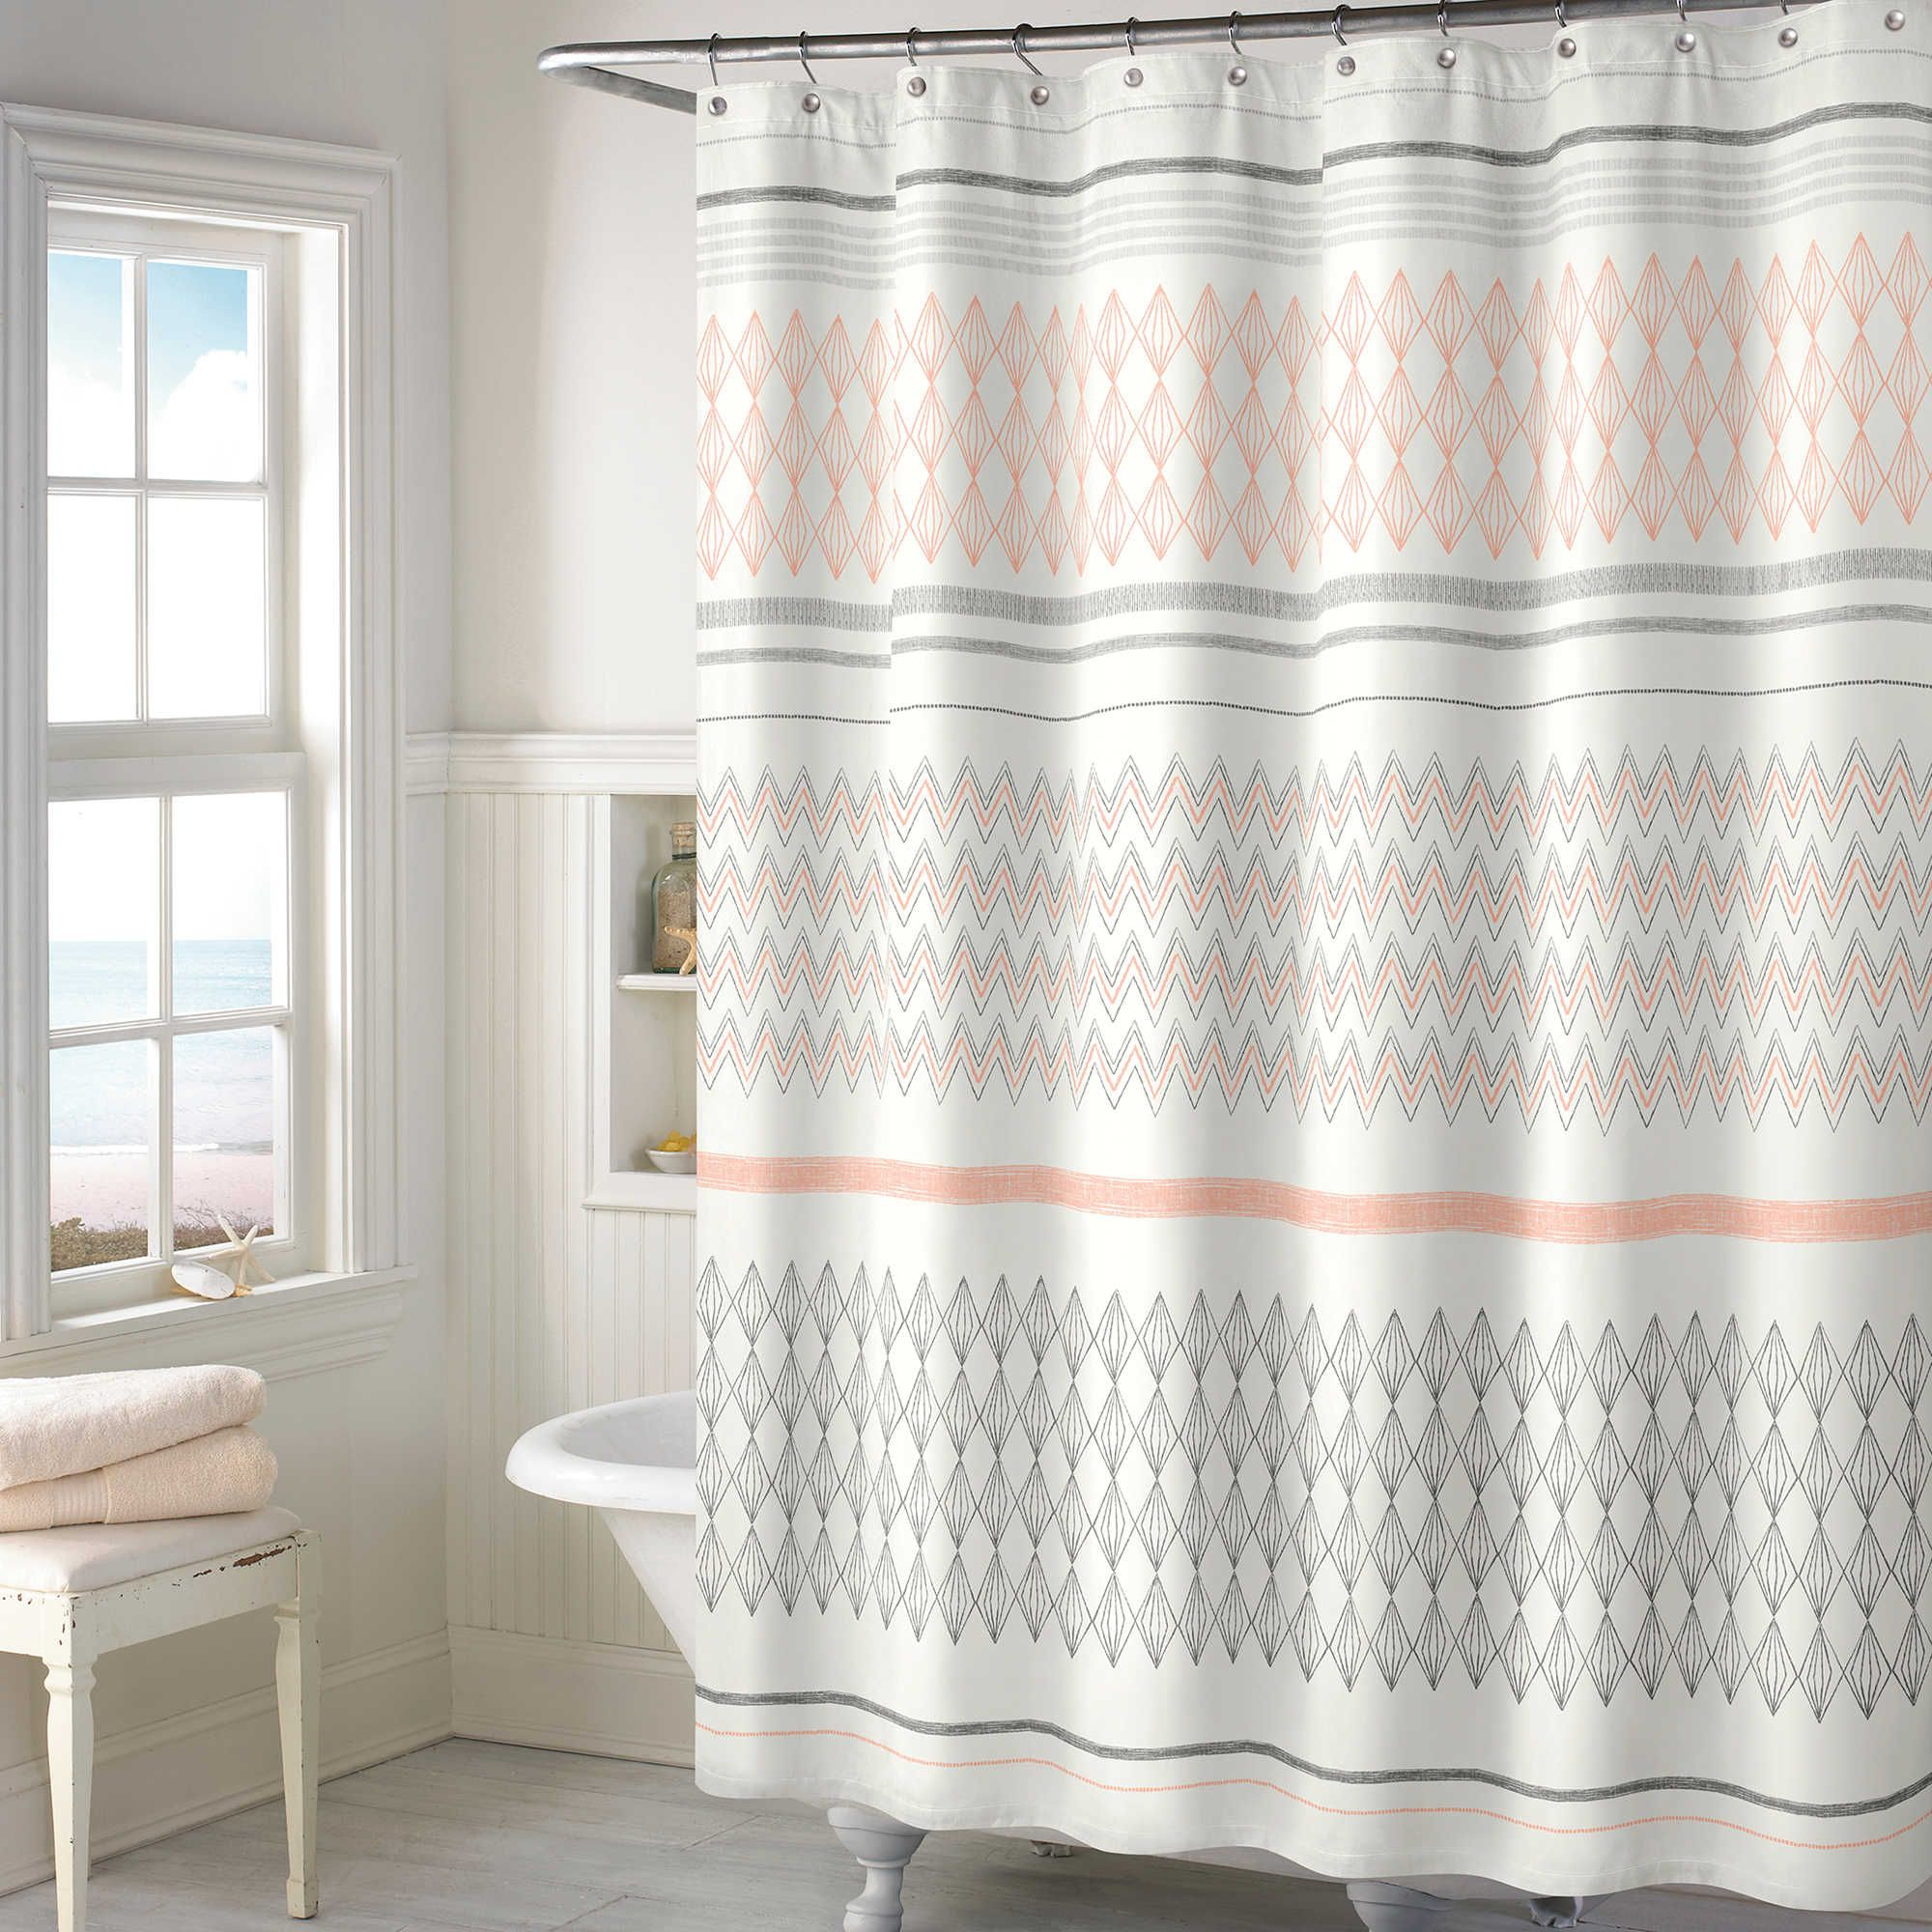 Norway Shower Curtain In Blush Sophisticated Bathroom Decor